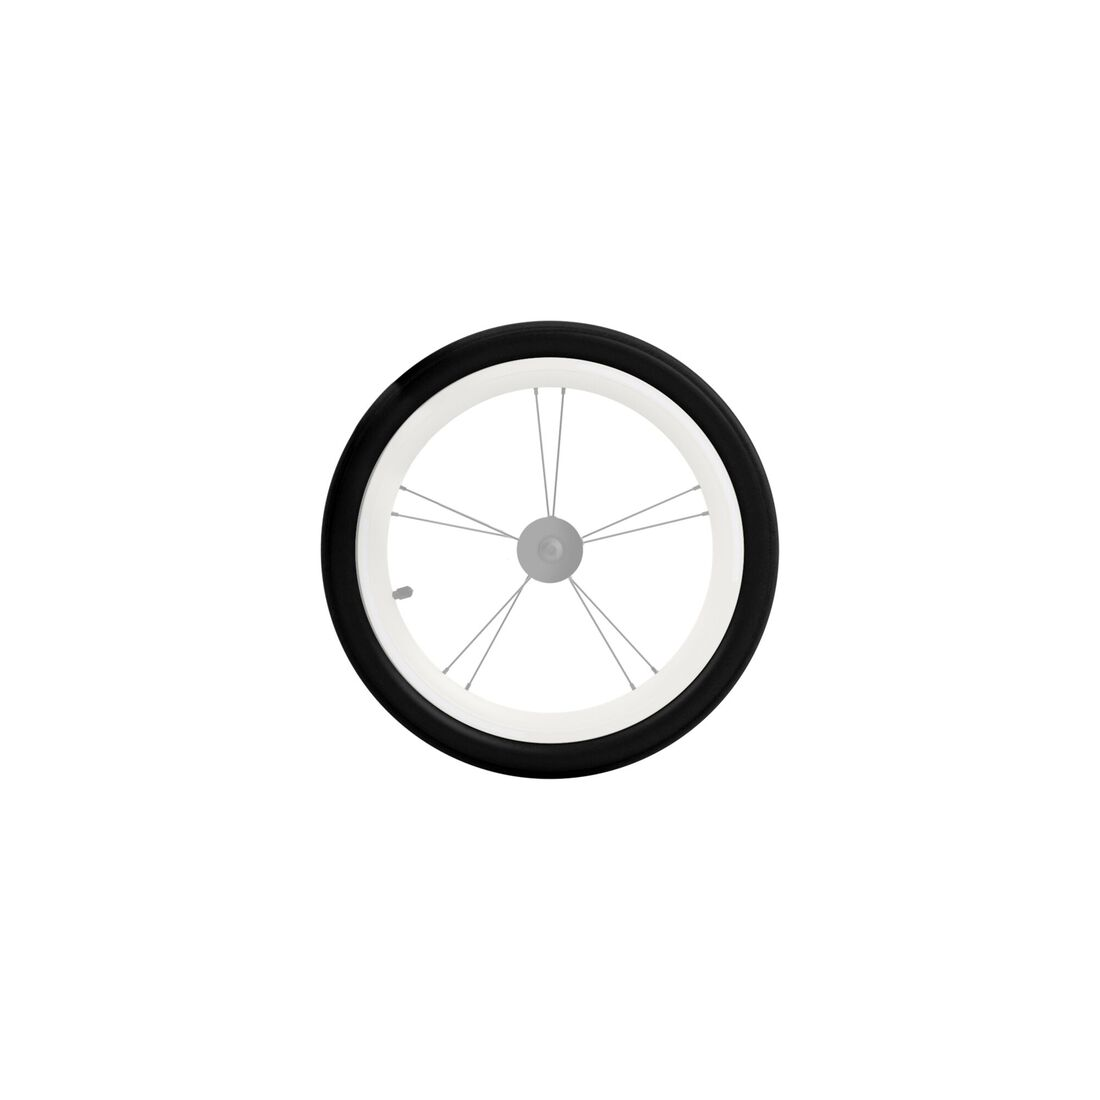 CYBEX Zeno/Avi Front Wheel Tyre and Tube - Black in Black large image number 1